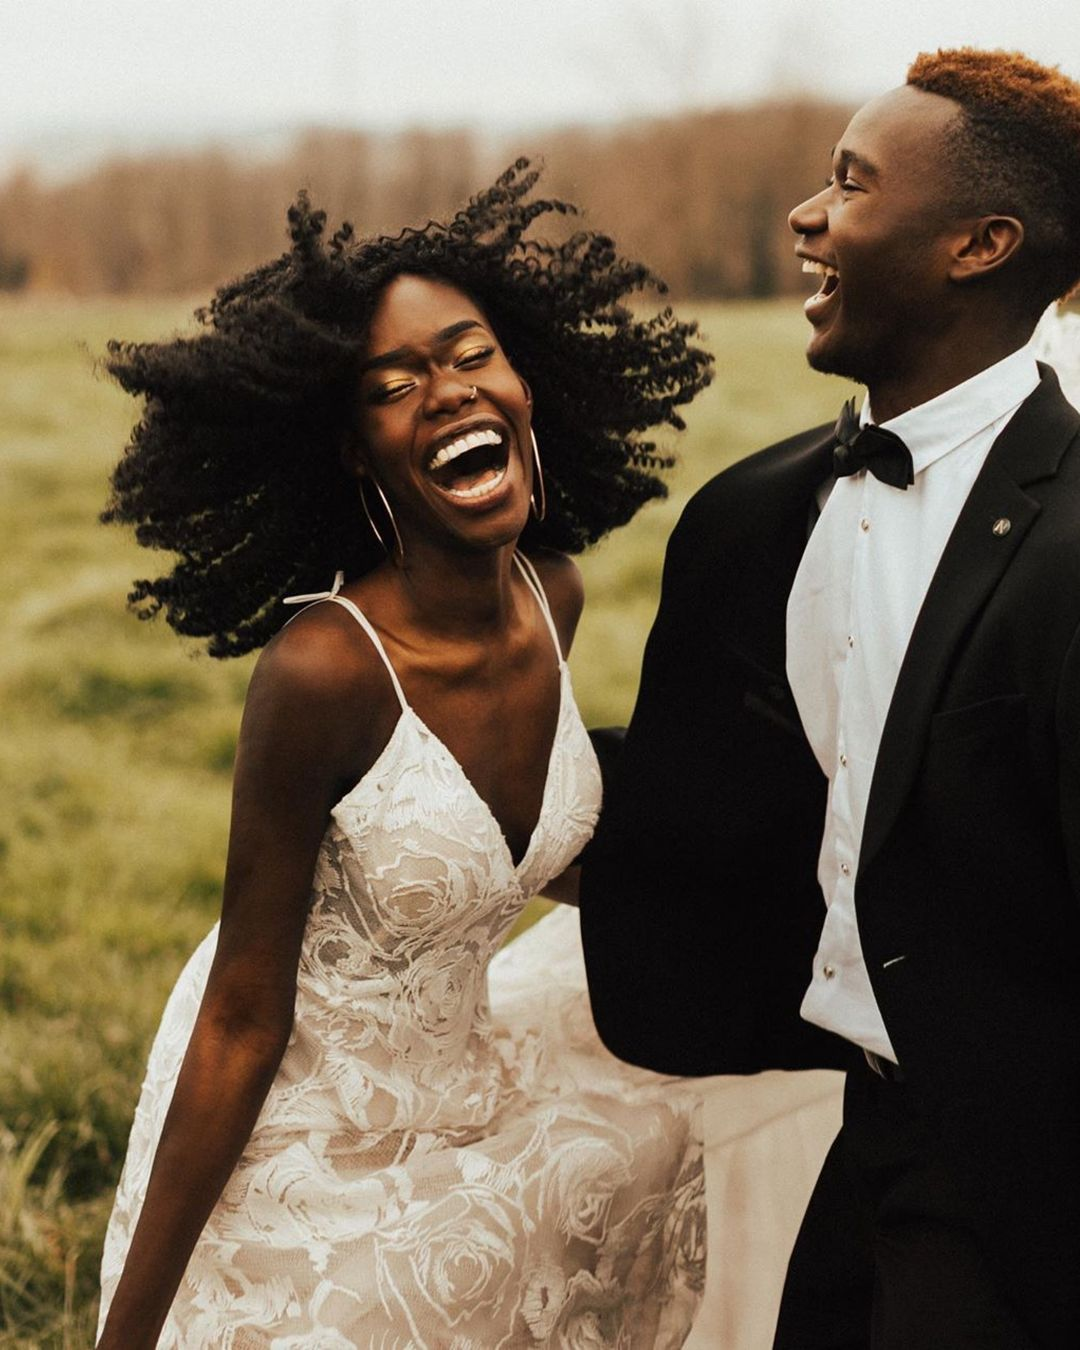 How-to-Manage-First-Dance-Wedding-Jitters-Bridal-Musings-DJ-Malike-6 How To Manage Wedding First Dance Jitters